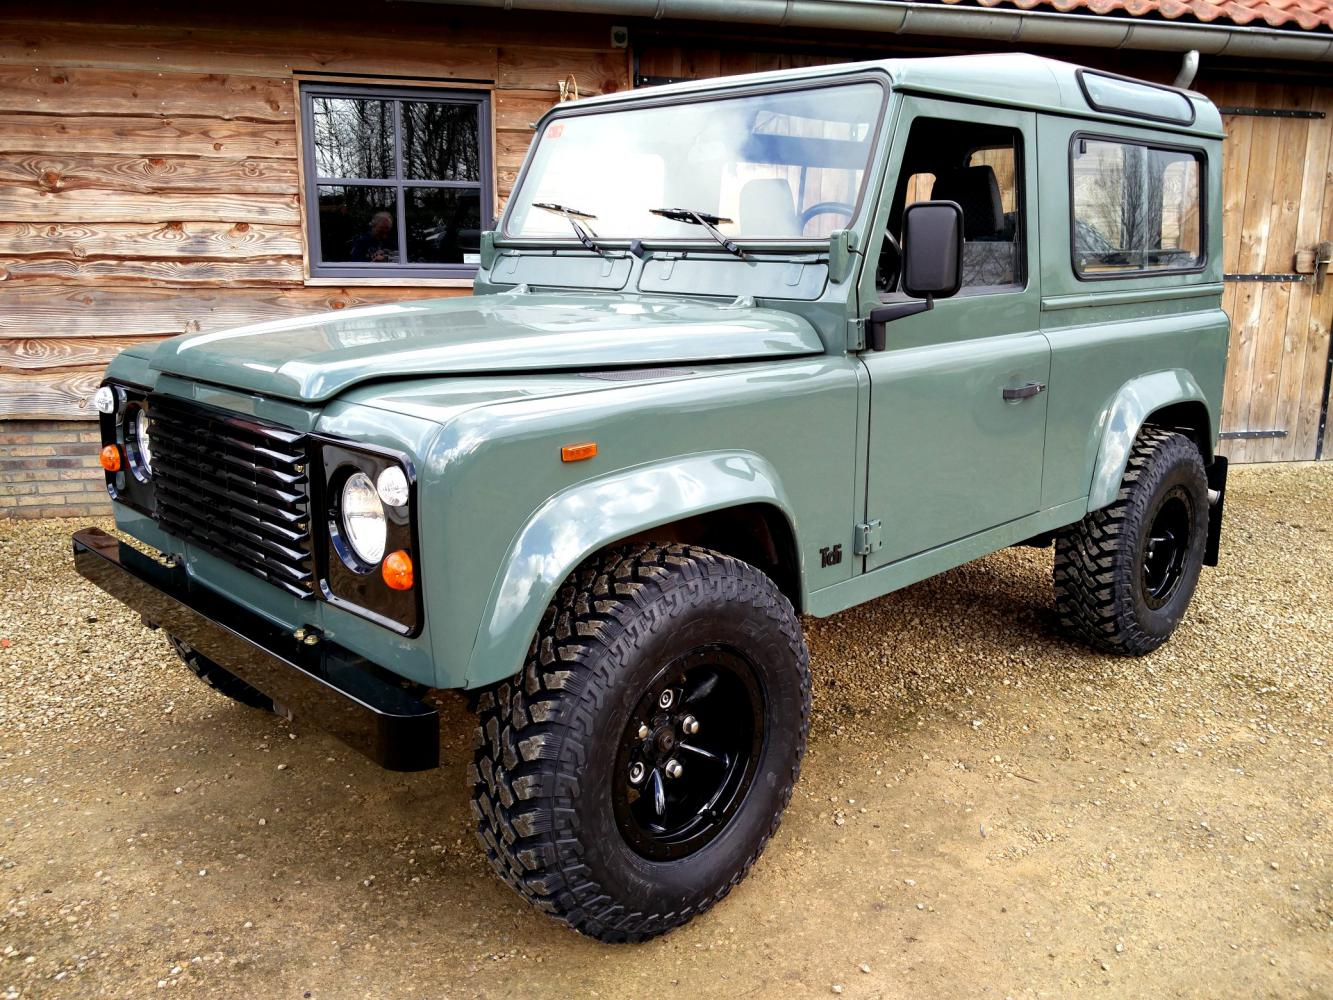 Click image for larger version  Name:1991 LR LHD Defender 90 Tdi Keswick 2 ready left front.jpg Views:17 Size:275.4 KB ID:360057